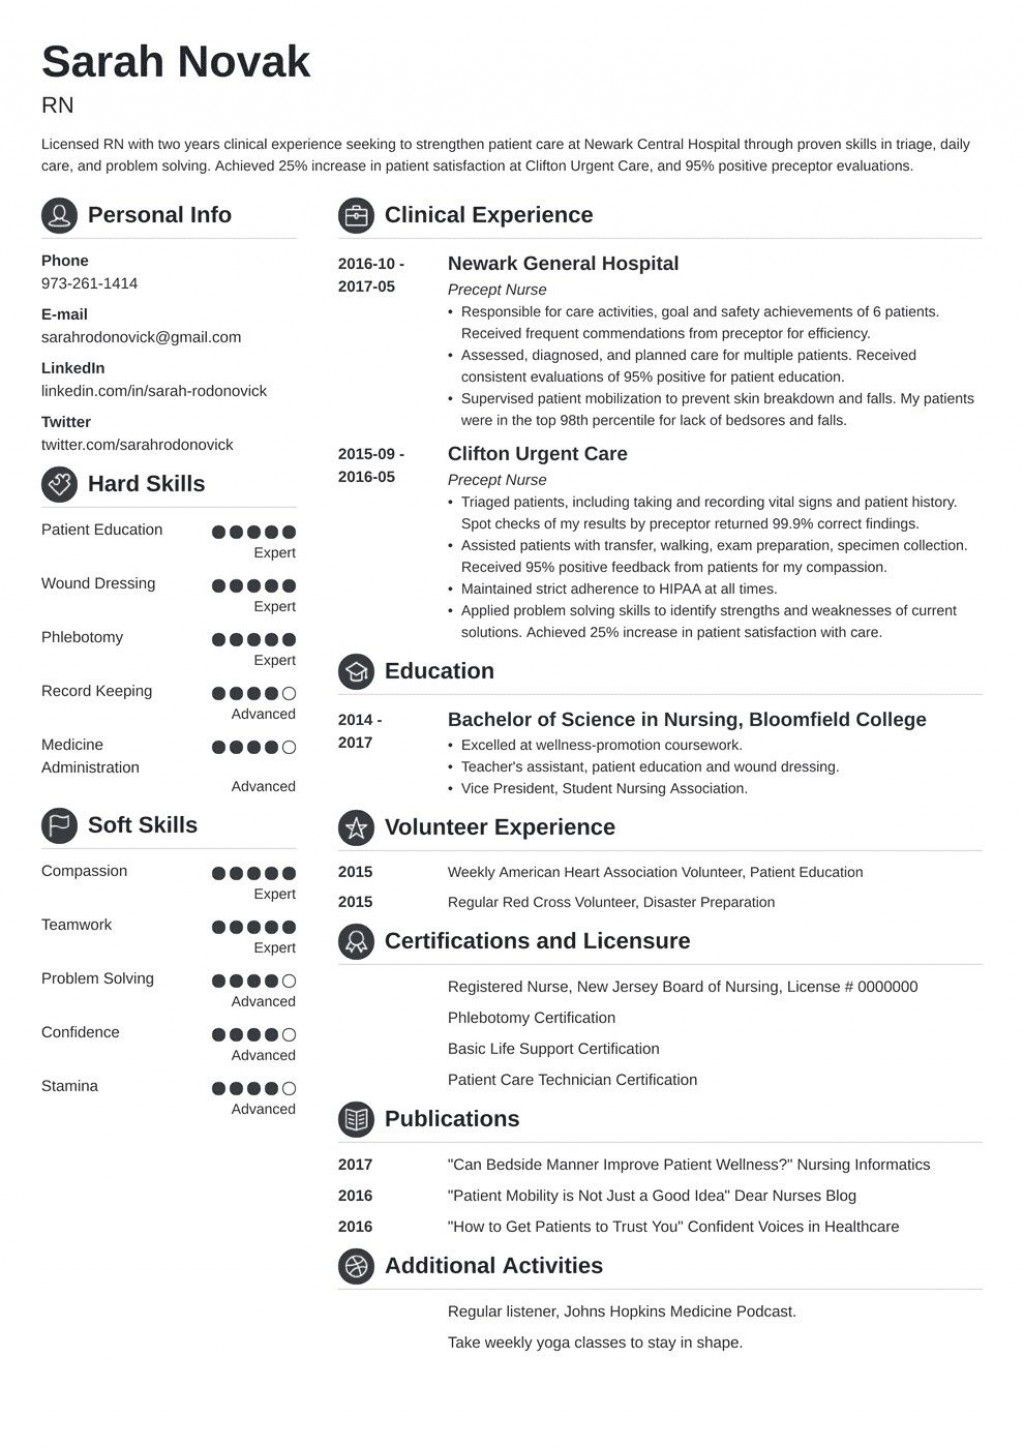 007 Marvelou New Grad Nursing Resume Template Photo  Graduate Nurse PractitionerLarge